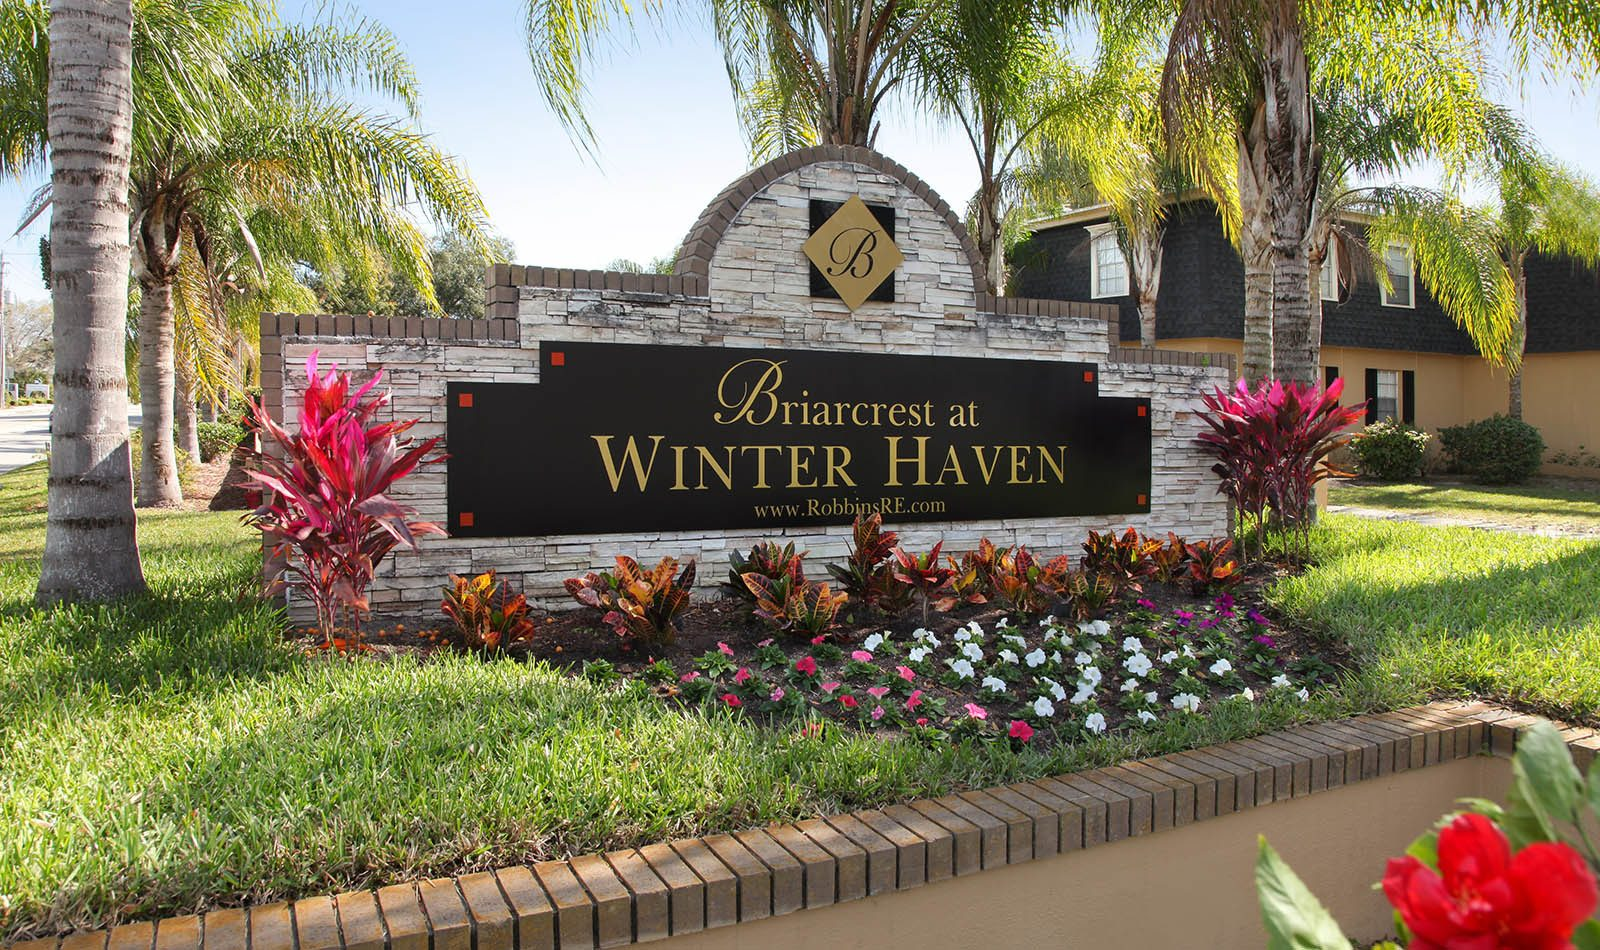 Signage at Briarcrest at Winter Haven in Winter Haven, FL